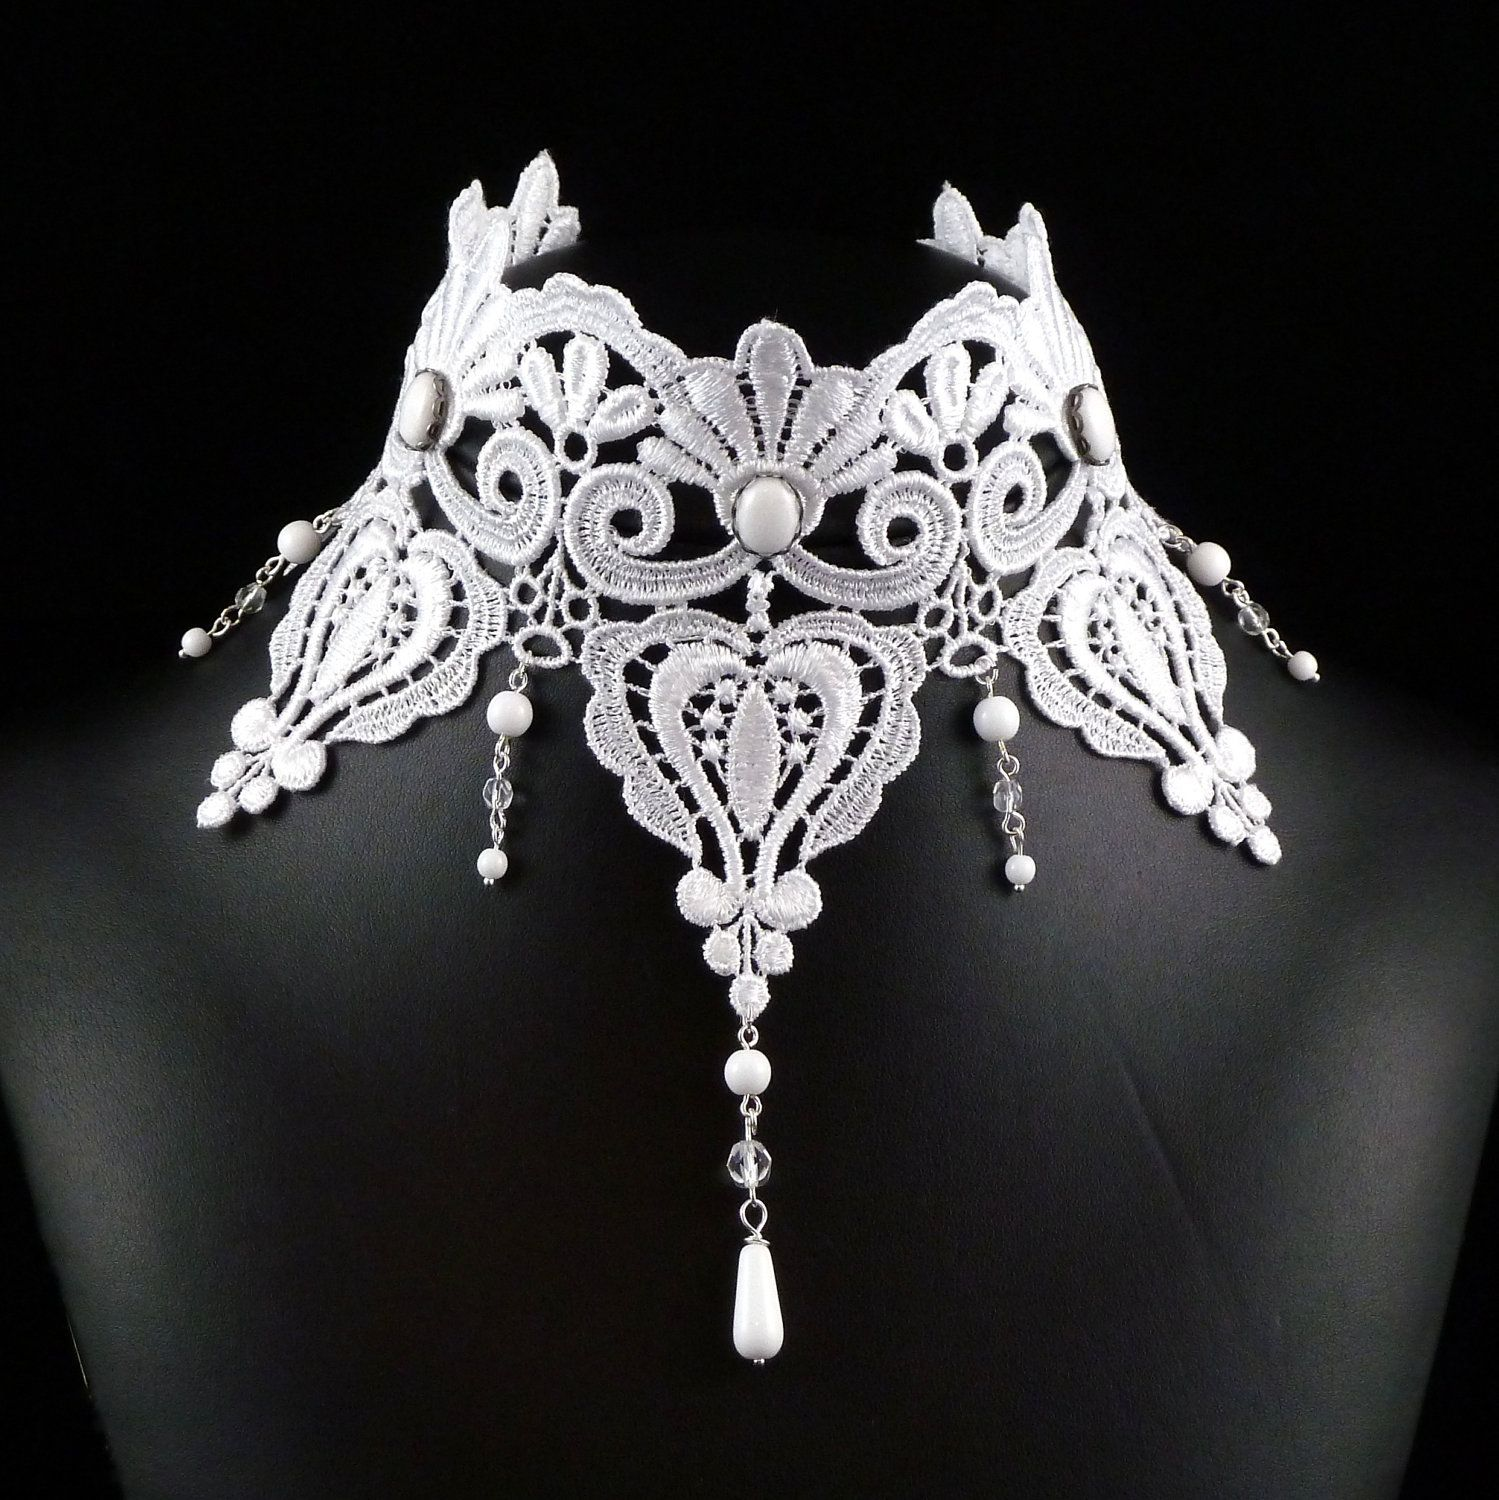 white victorian choker necklace lace bridal jewelry large chocker bib wedding renaissance costume jewellery